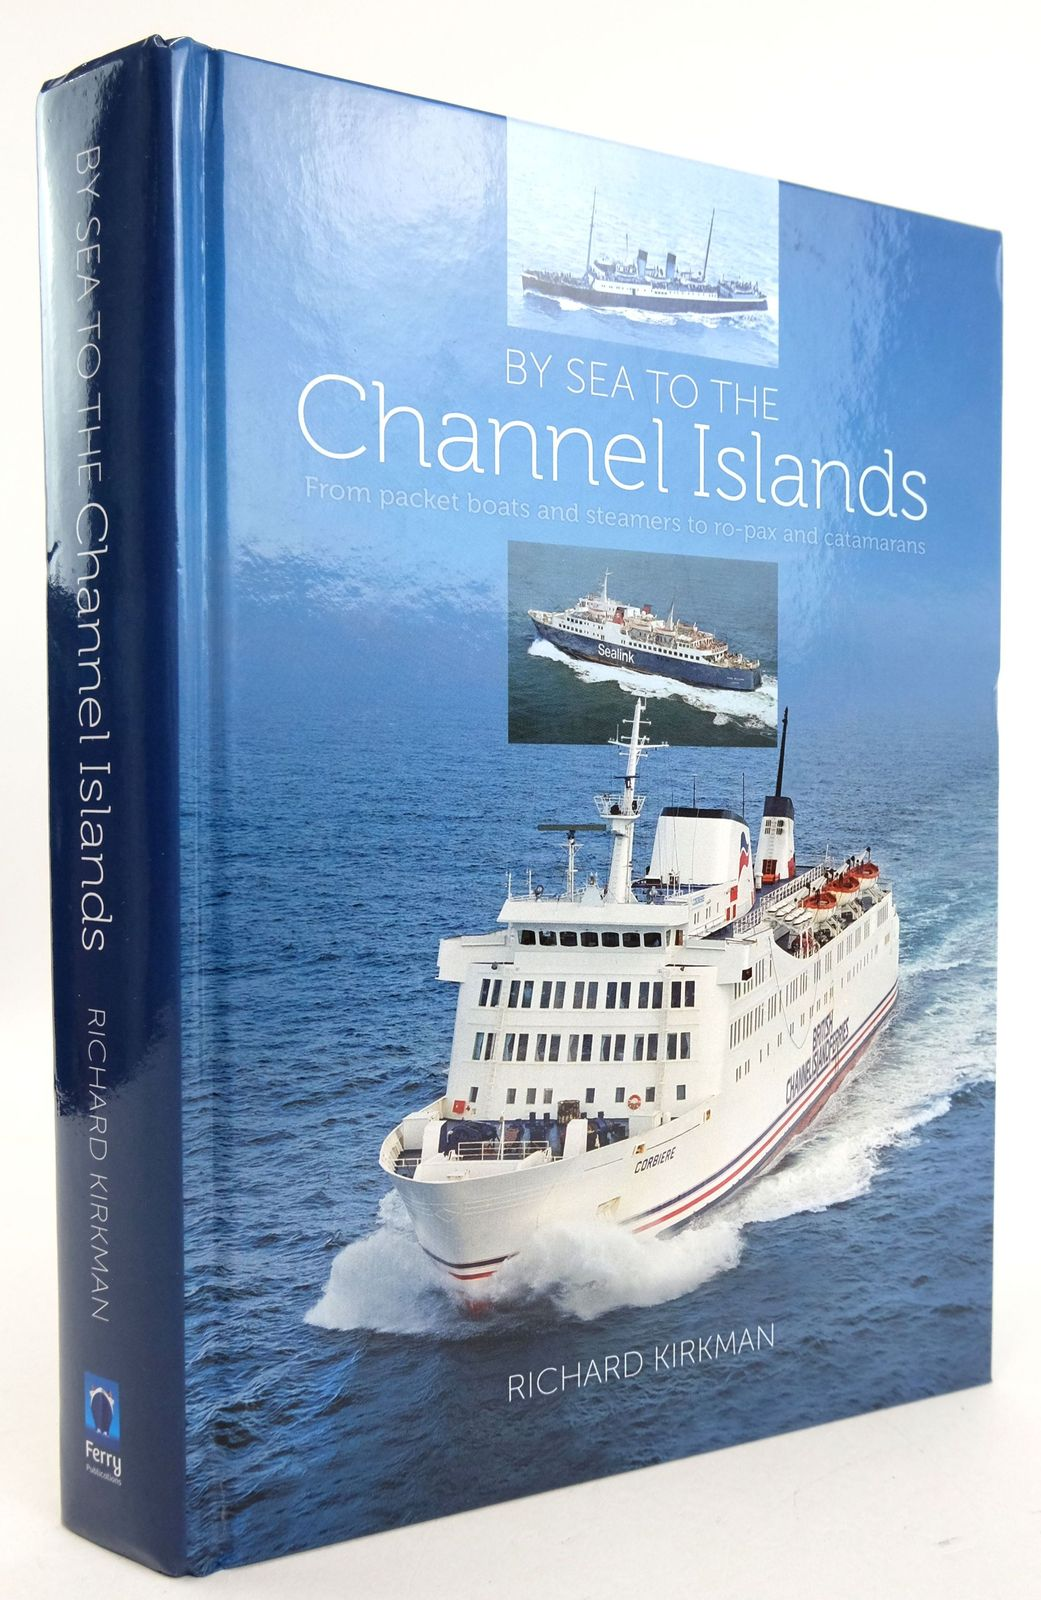 Photo of BY SEA TO THE CHANNEL ISLANDS: FROM PACKET BOATS AND STEAMERS TO RO-PAX AND CATAMARANS- Stock Number: 1819746